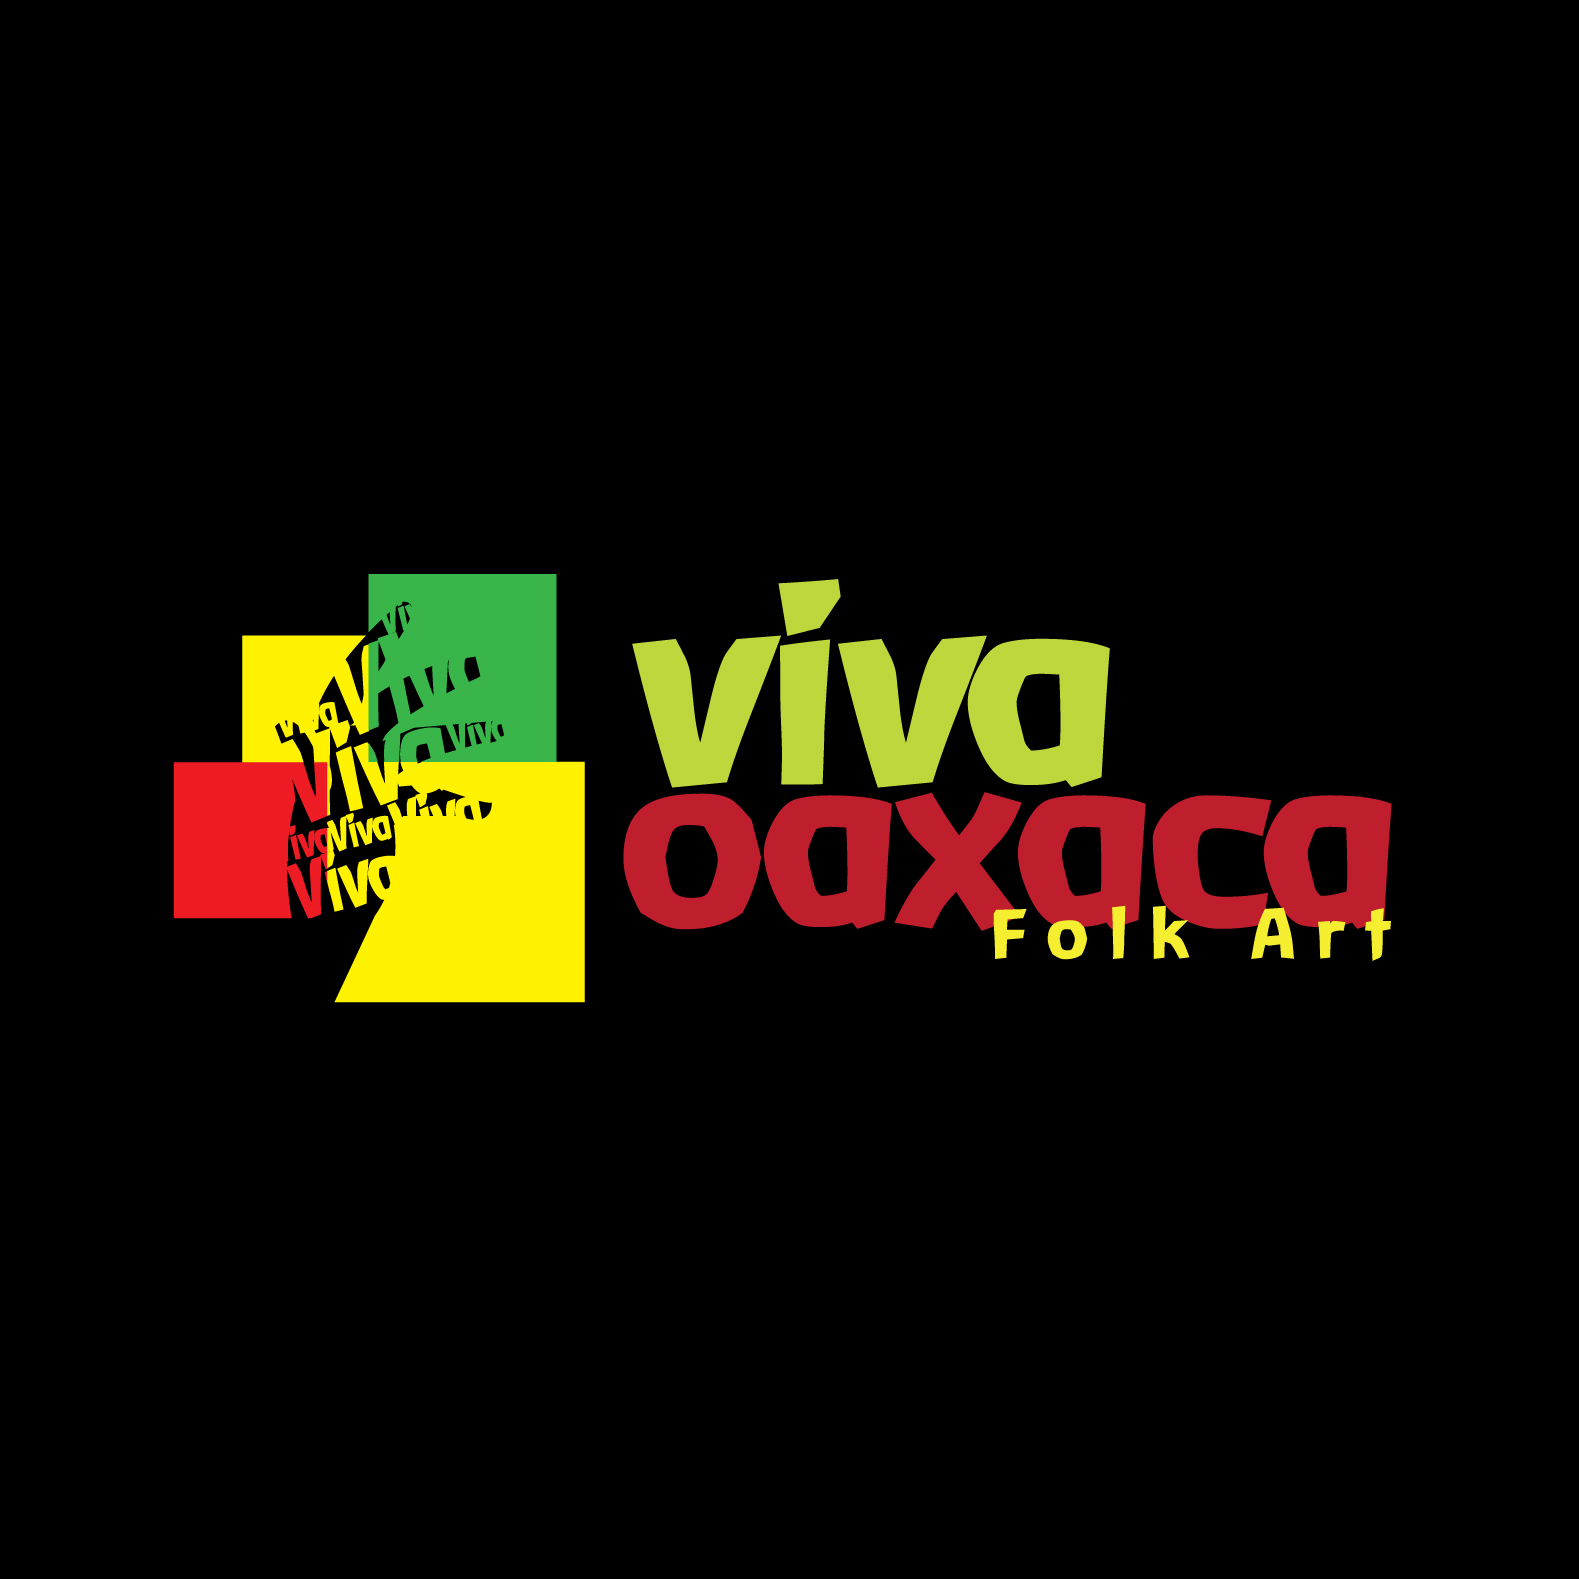 Logo Design by stormbighit - Entry No. 30 in the Logo Design Contest Logo Design Needed for Mexican Handcrafts Website - Viva Oaxaca Folk Art.